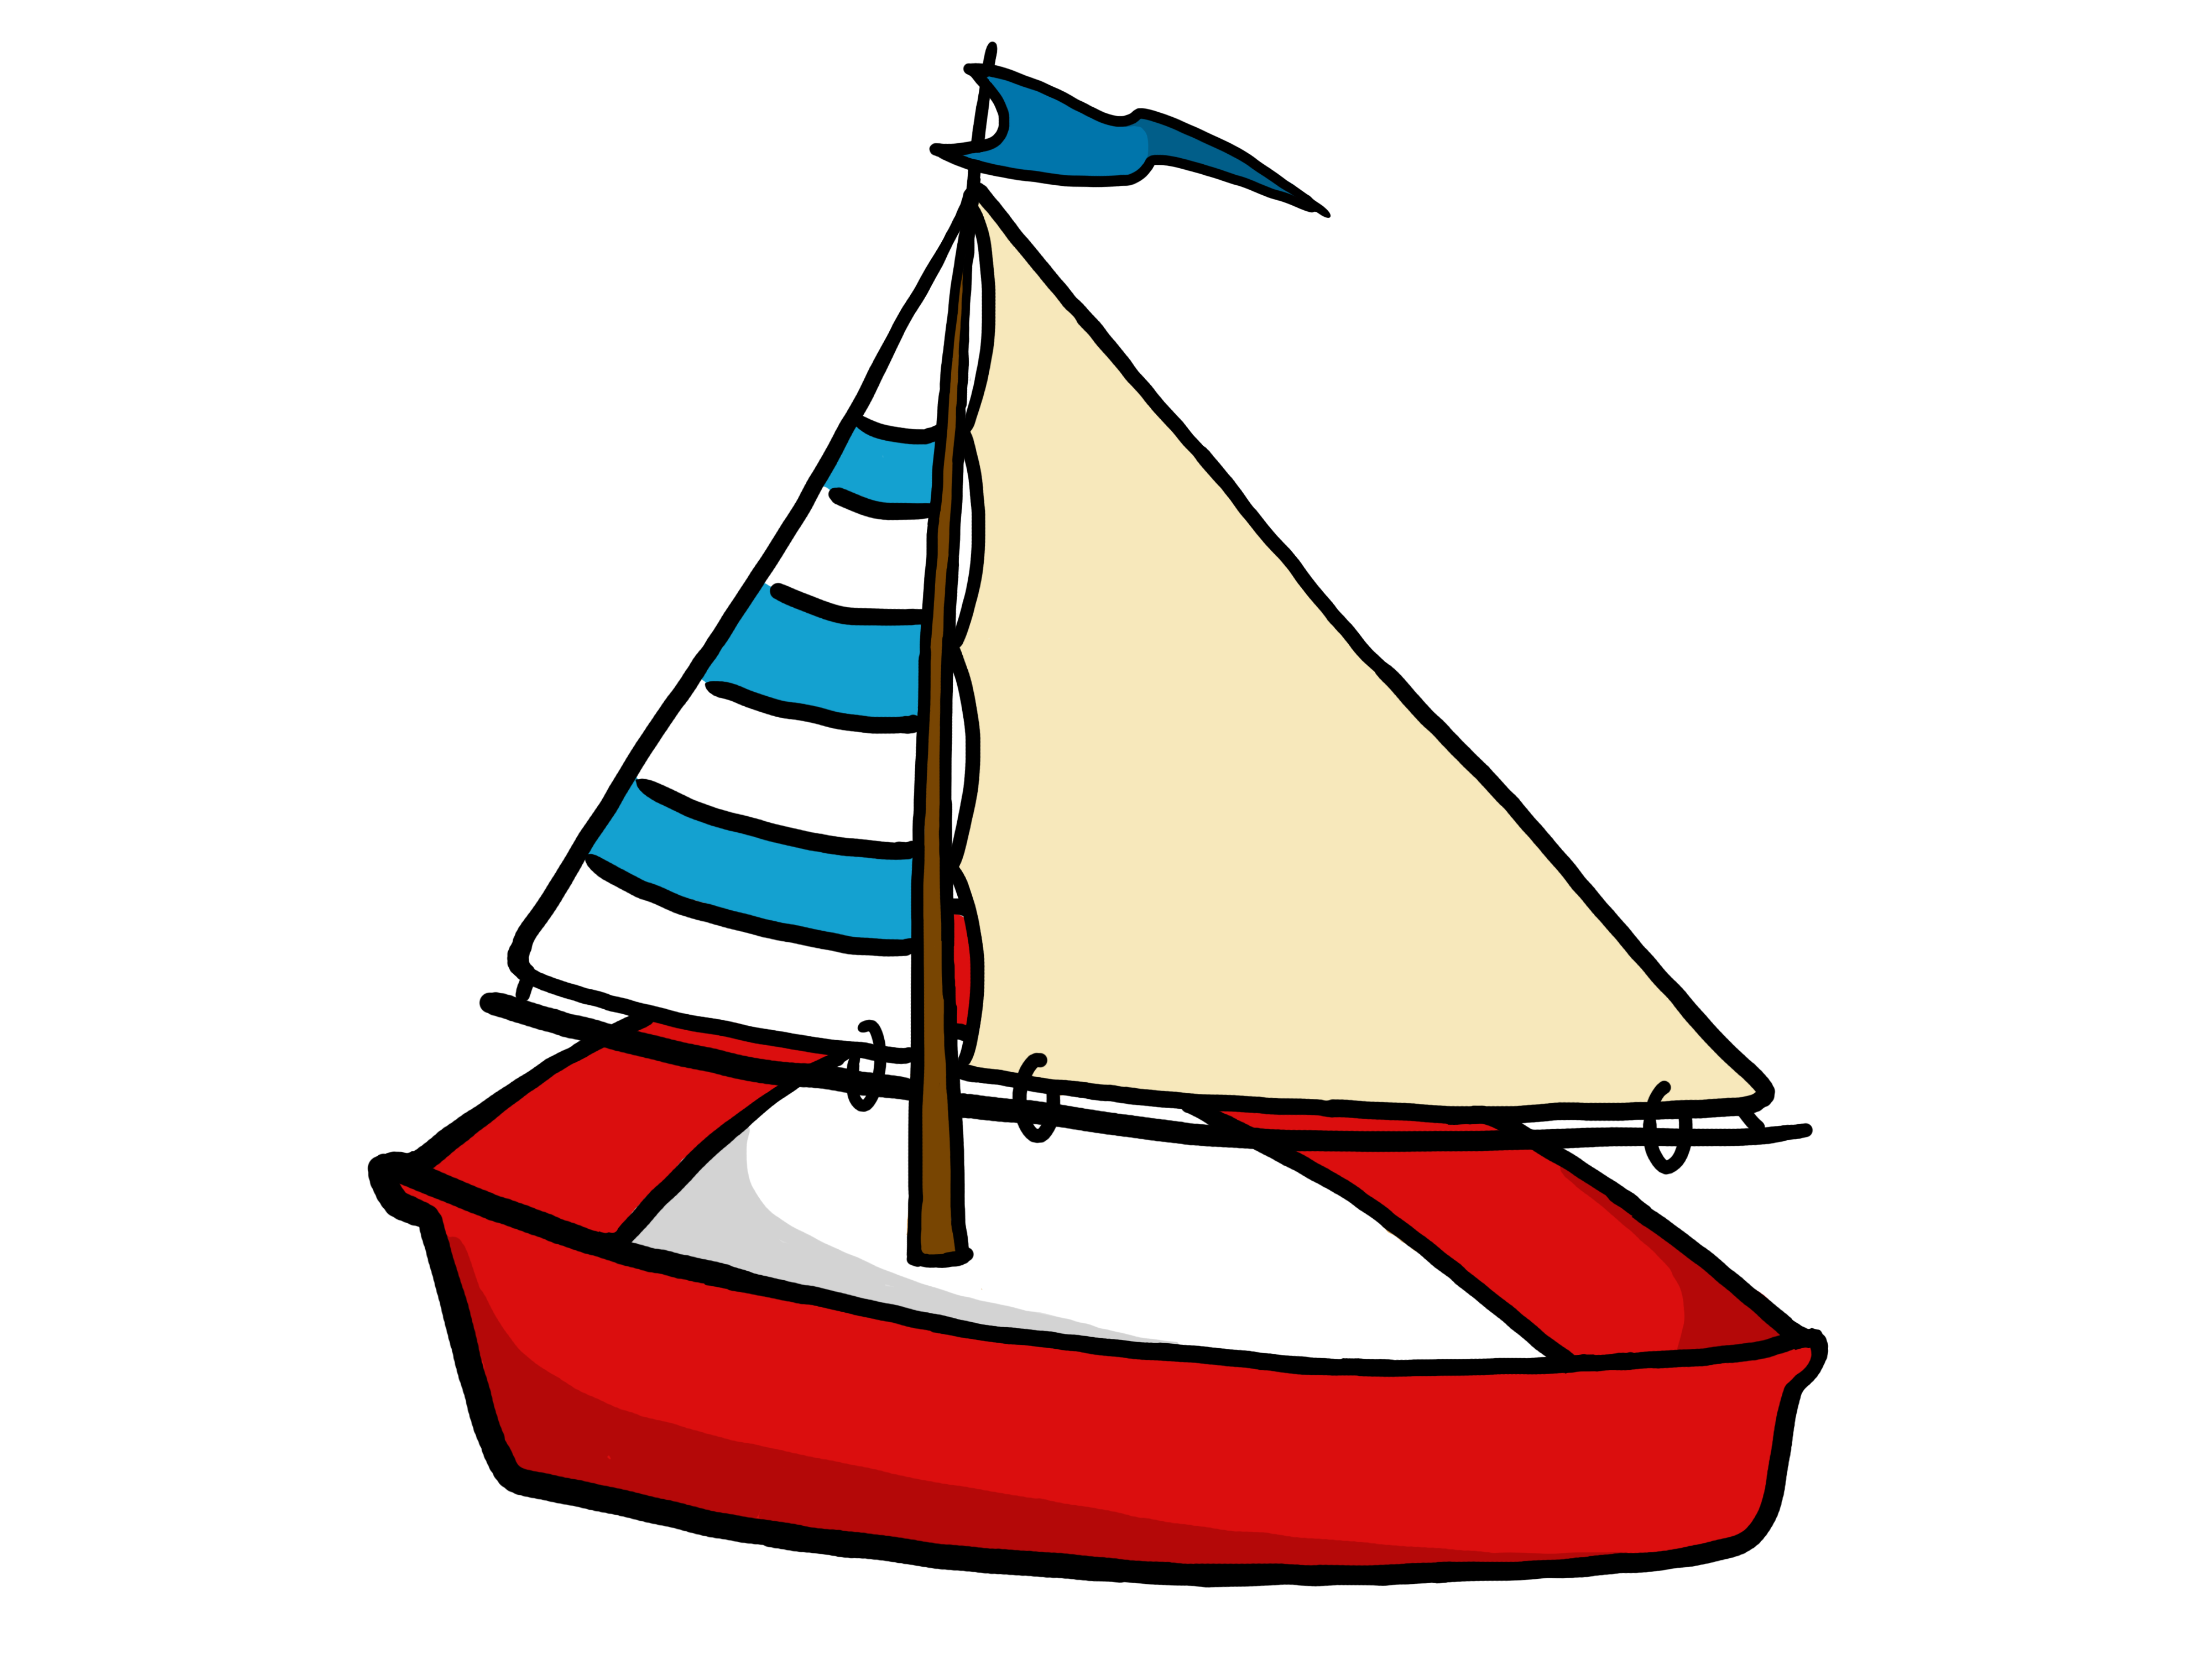 Old ship sun clipart vector free stock Sailing Ship Clipart at GetDrawings.com | Free for personal use ... vector free stock